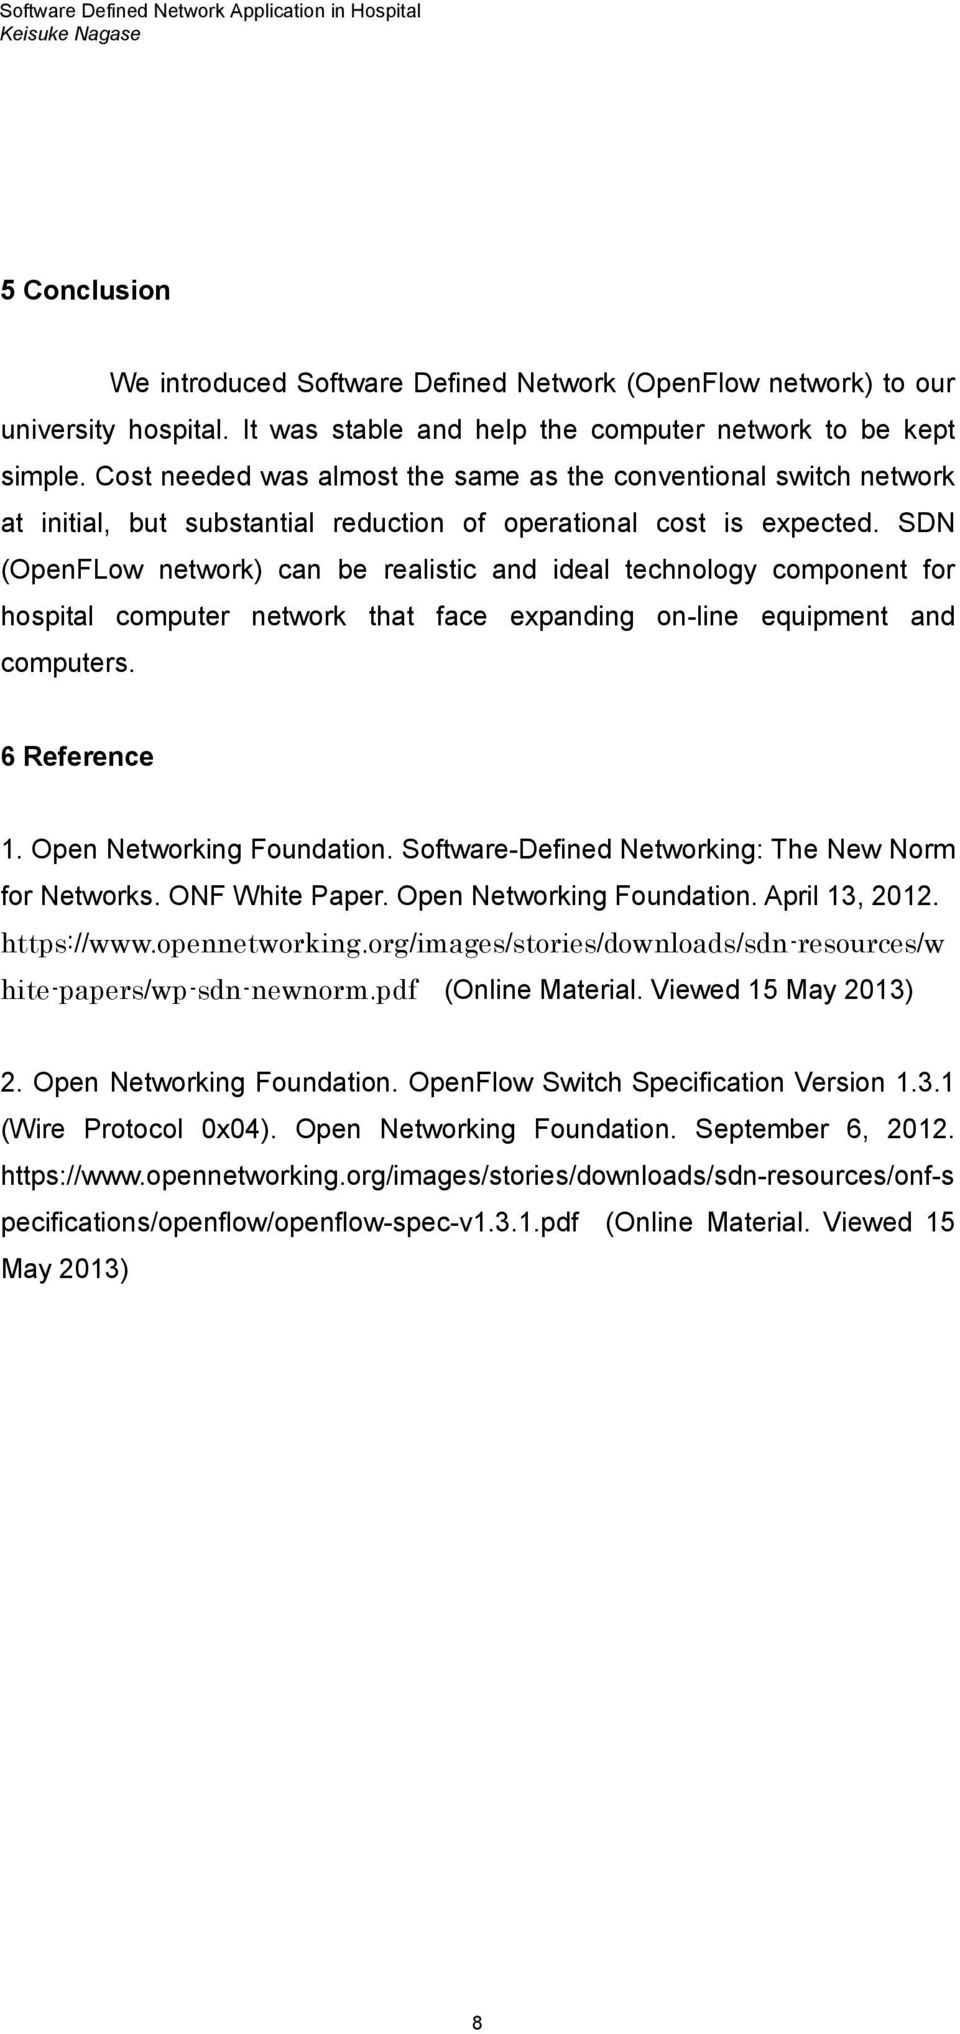 SDN (OpenFLow network) can be realistic and ideal technology component for hospital computer network that face expanding on-line equipment and computers. 6 Reference 1. Open Networking Foundation.